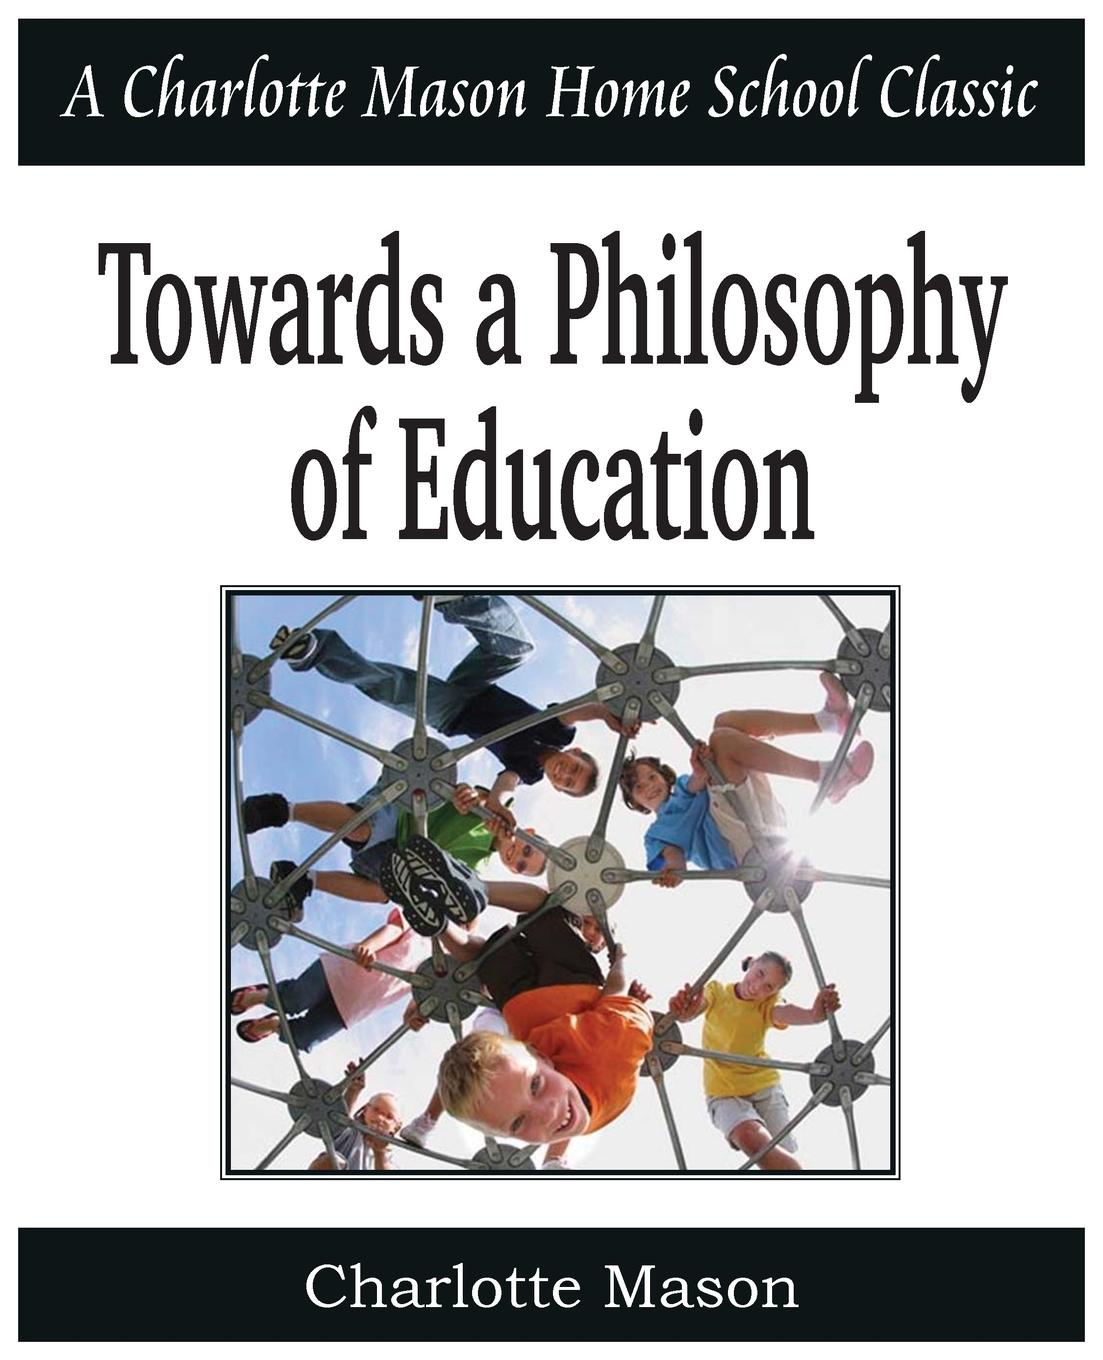 Charlotte Mason Towards a Philosophy of Education. Charlotte Mason Homeschooling Series, Vol. 6 amjad reba perception about ngo contribution towards education